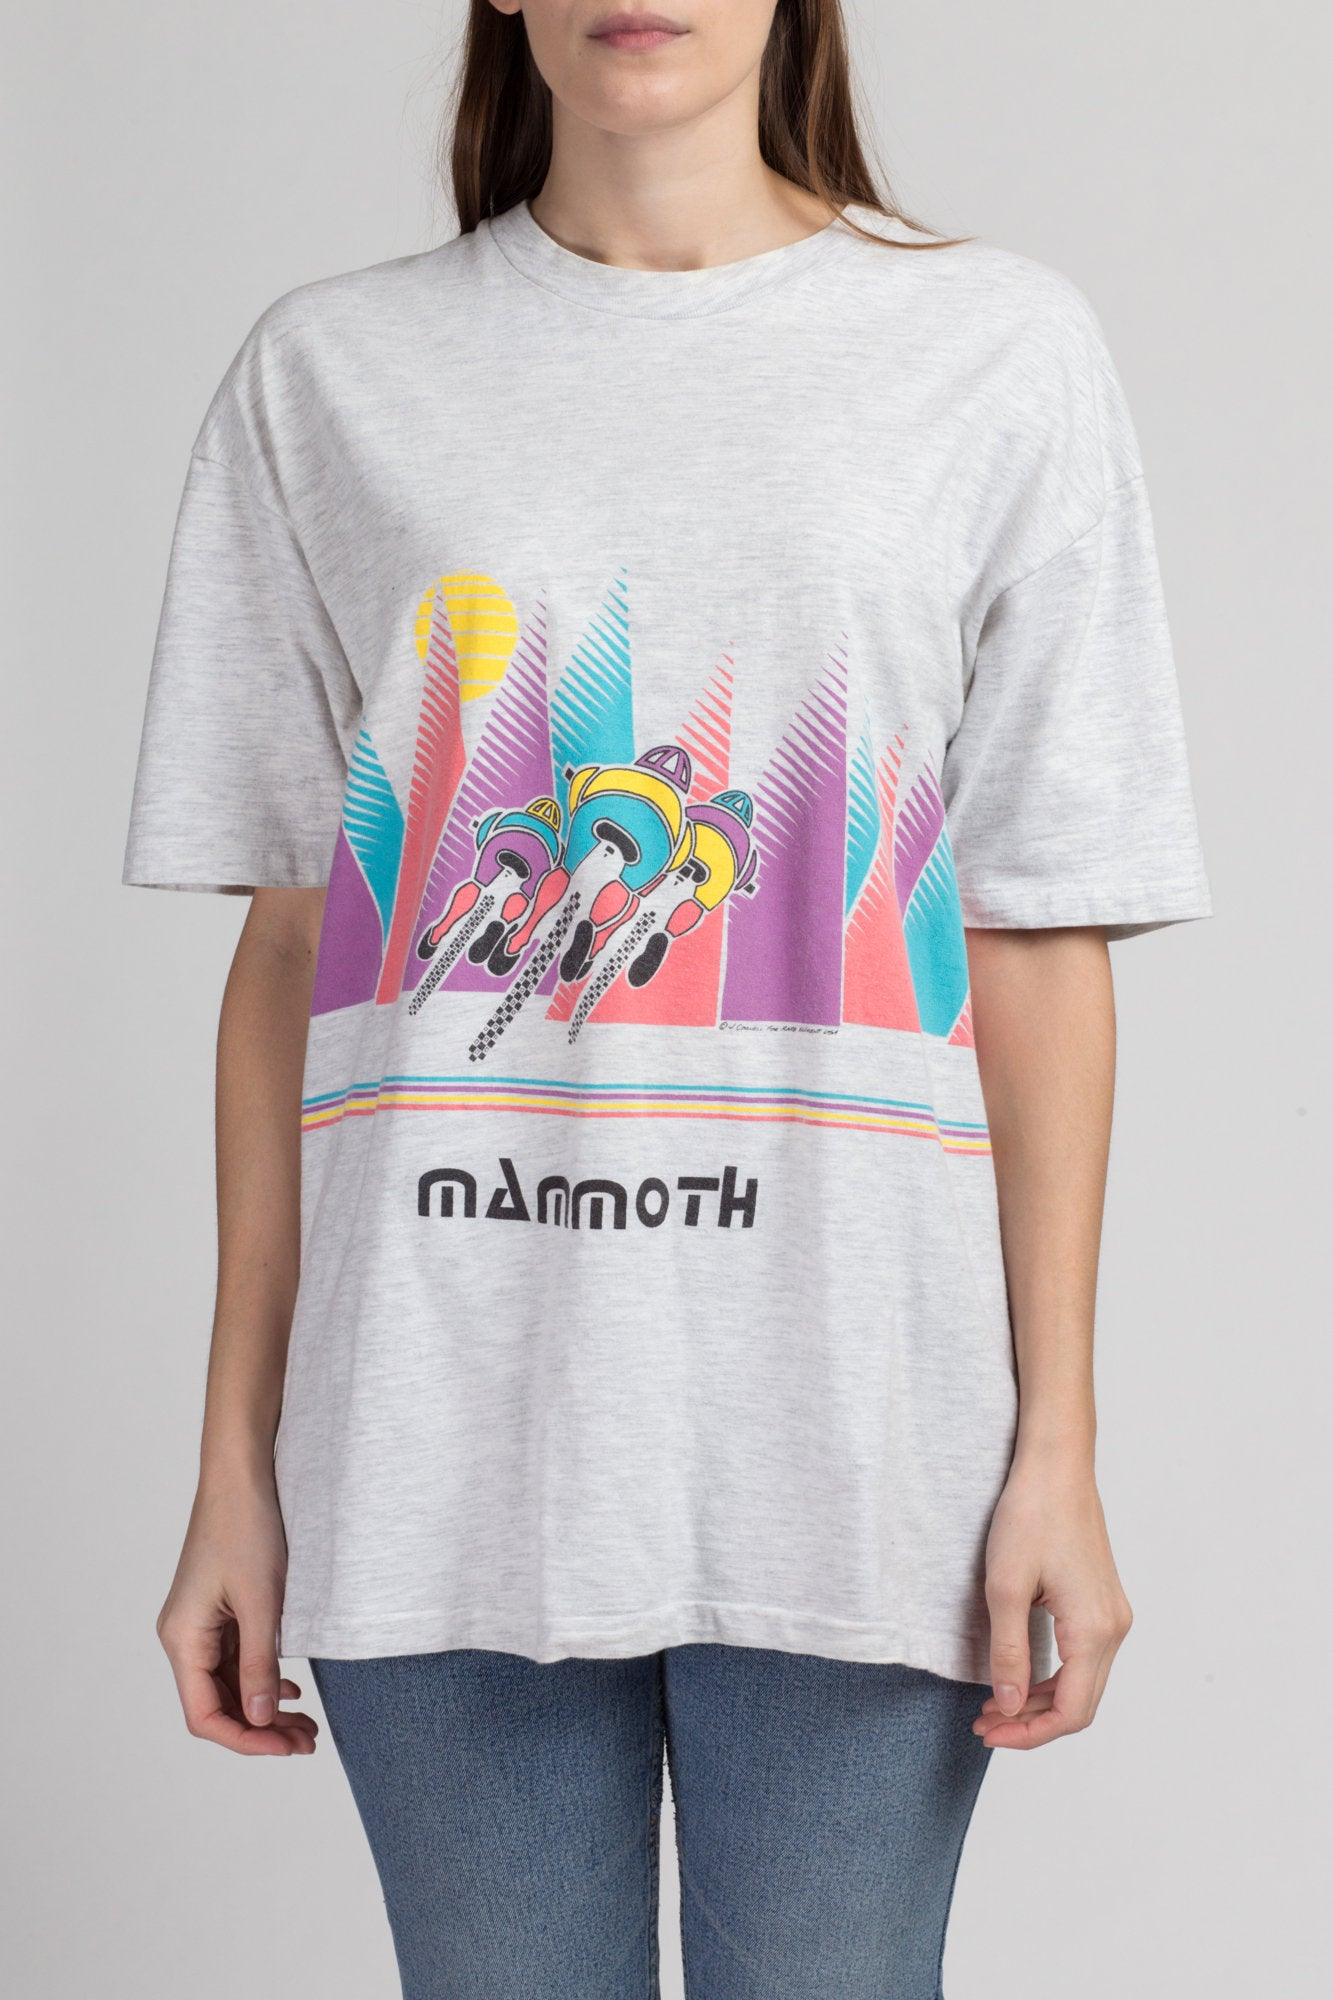 90s Mammoth Mountain Biking Graphic Tee - Extra Large | Vintage Unisex California Tourist T Shirt